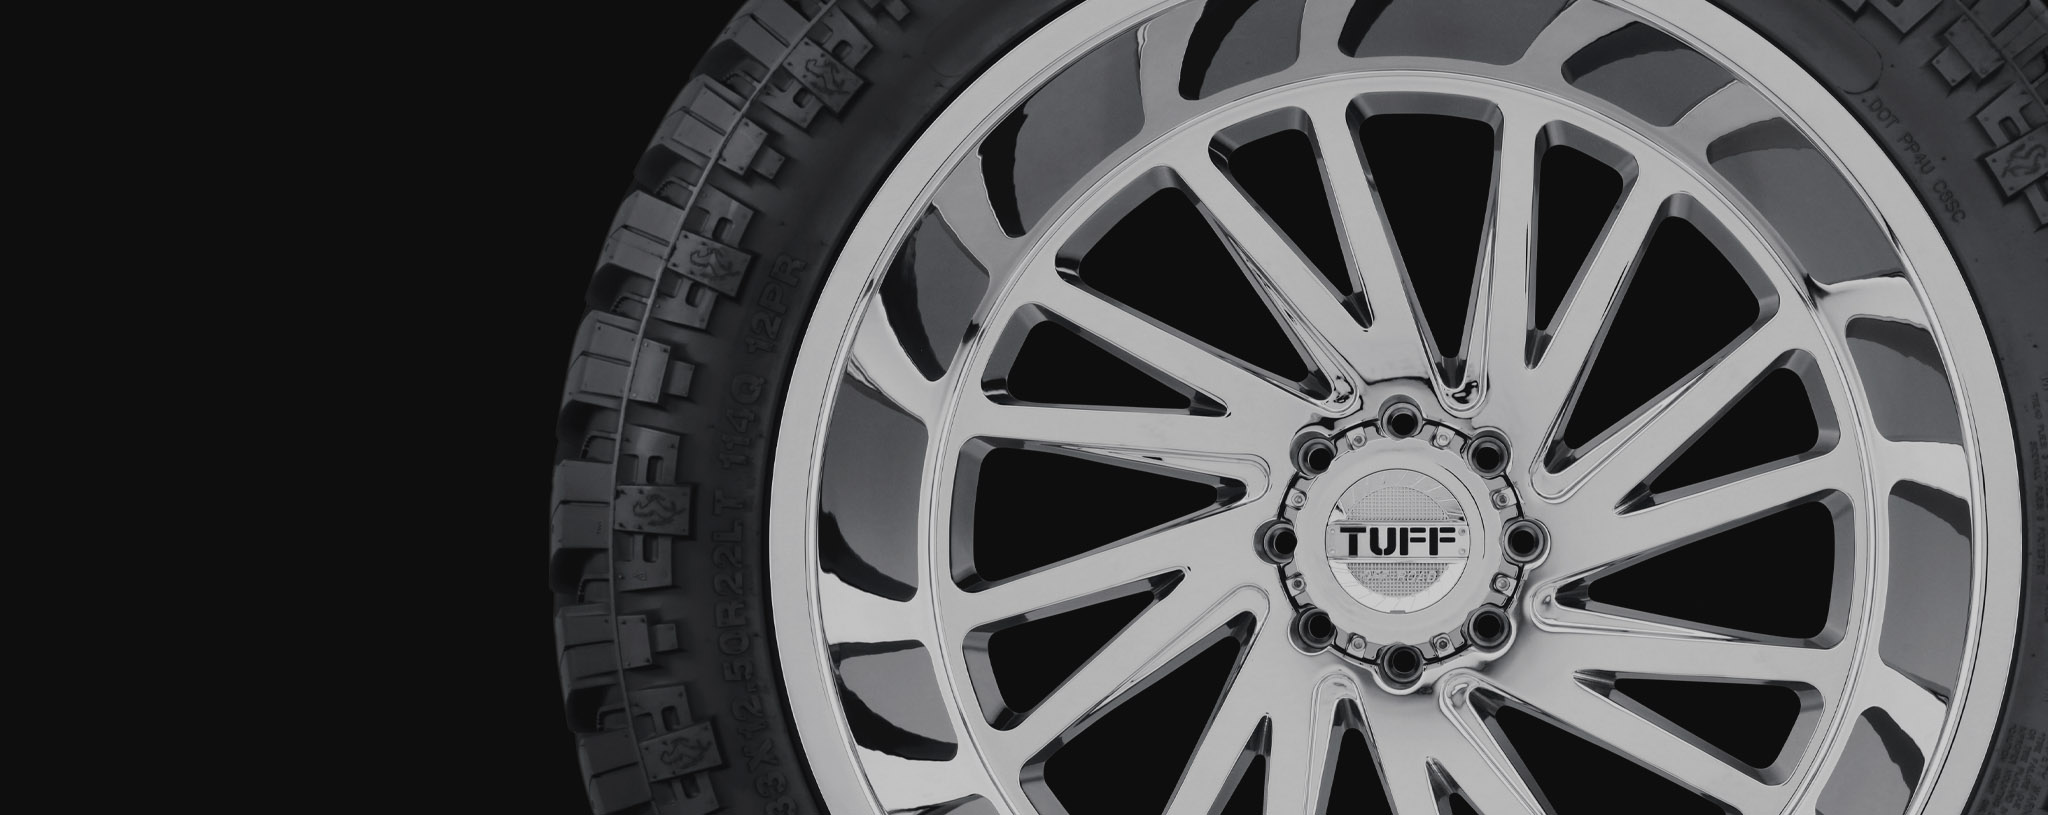 Offroad Wheels By Tuff